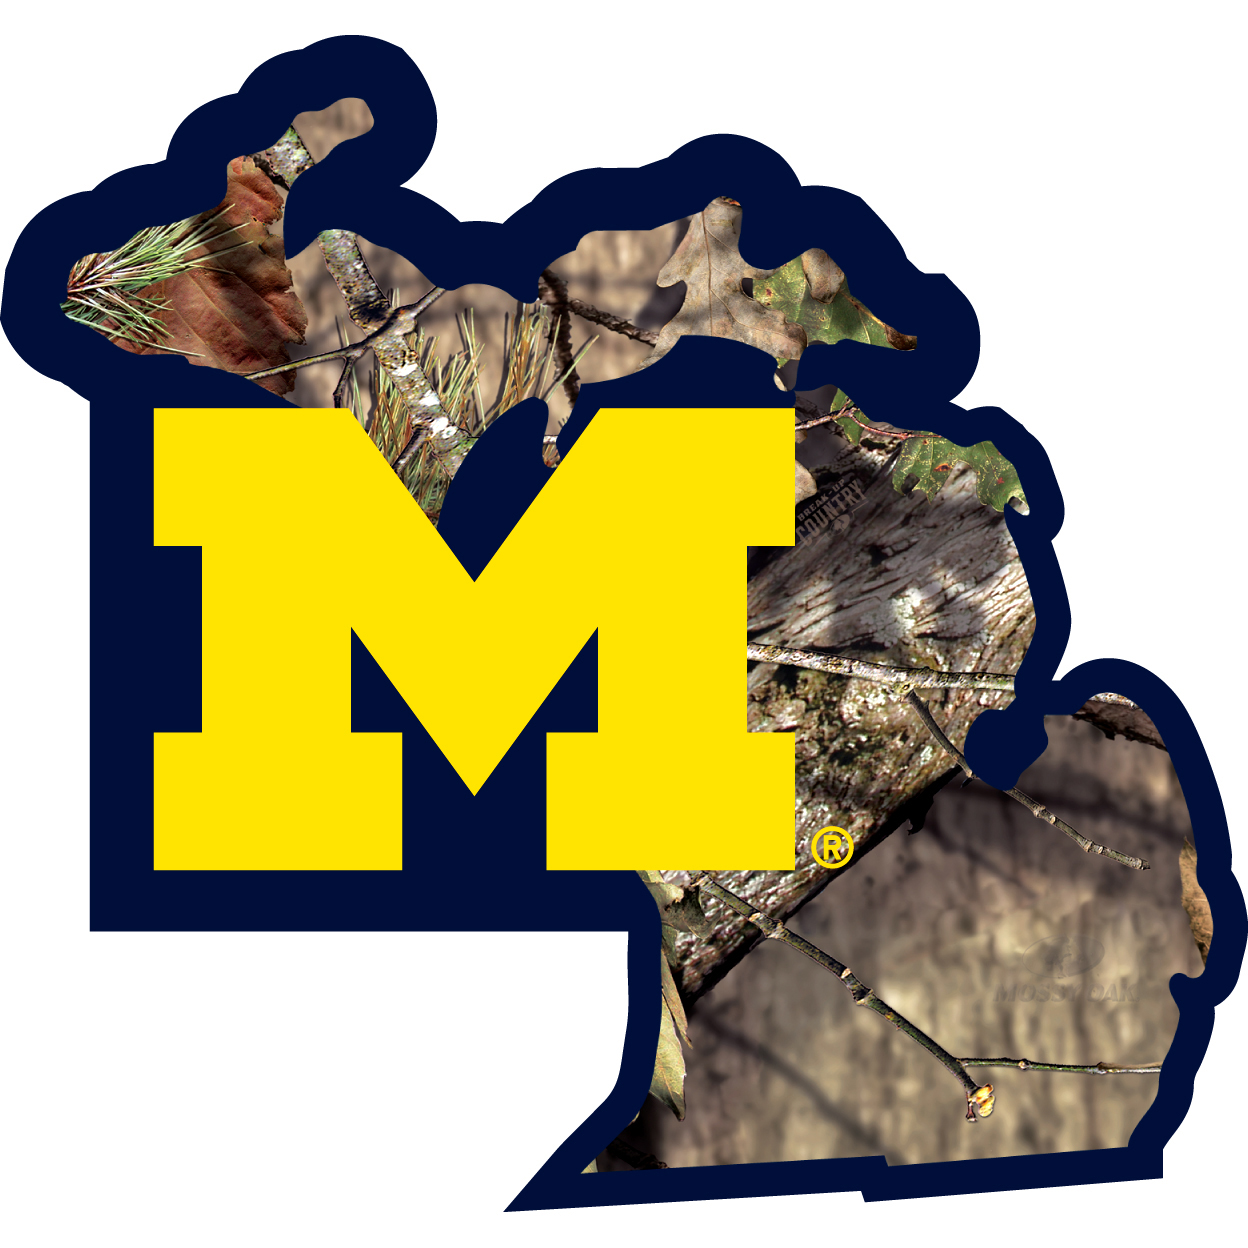 Michigan Wolverines State Decal w/Mossy Oak Camo - It's a home state decal with a sporty twist! This Michigan Wolverines decal features the team logo over a silhouette of the state in team colors and Mossy Oak camo and a helmet marking the home of the team. The decal is approximately 5 inches on repositionable vinyl.